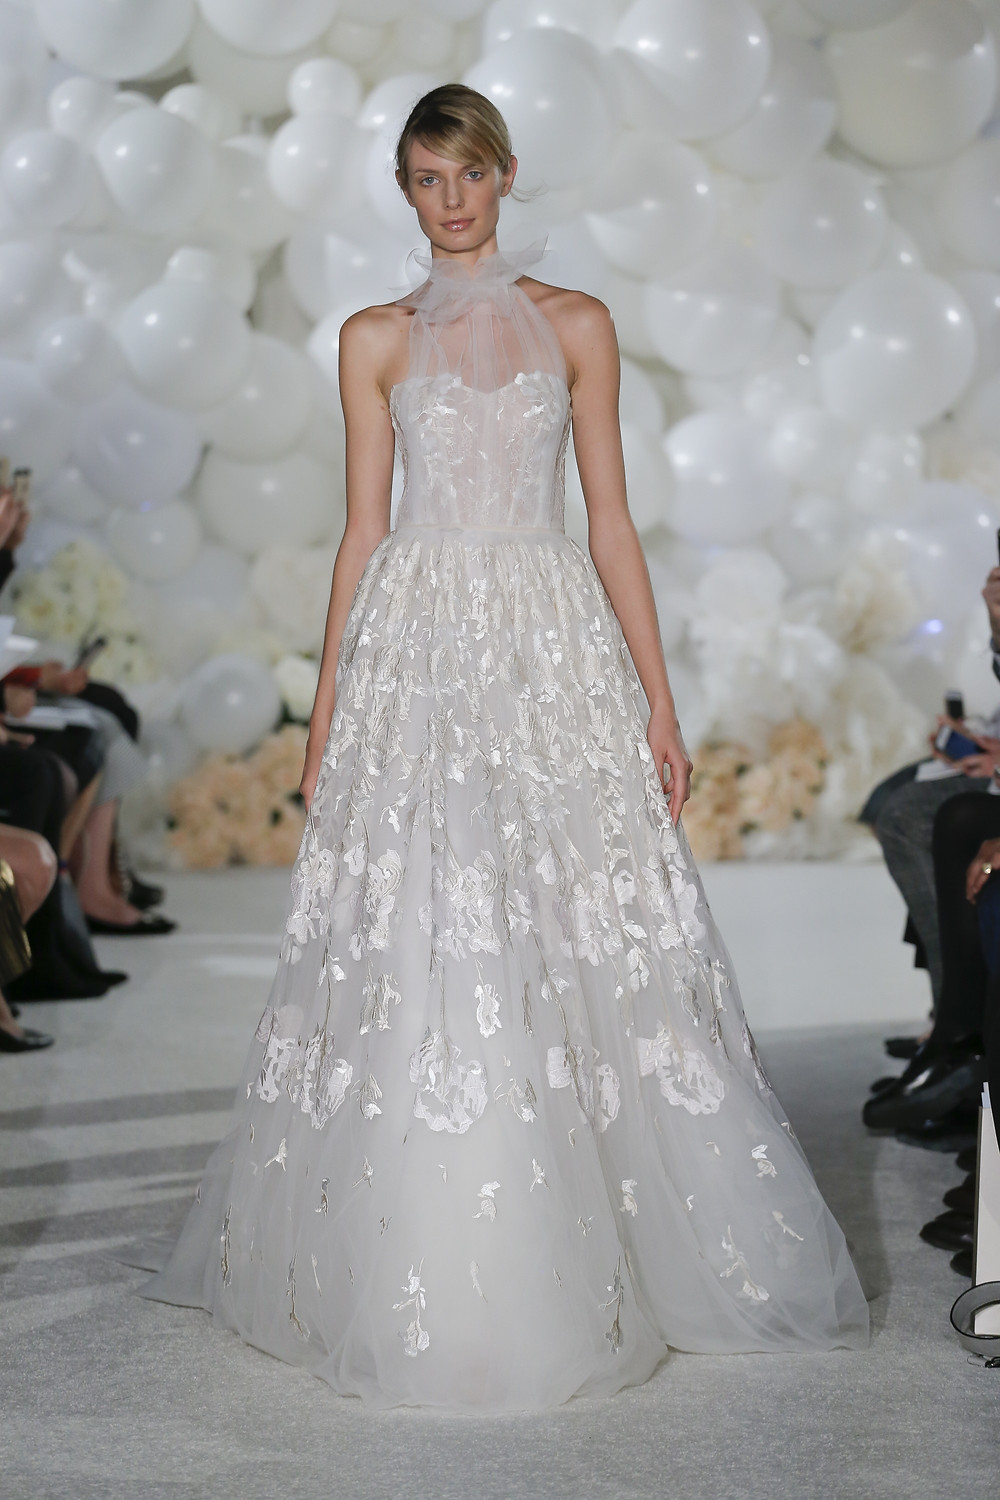 A Mira Zwillinger halterneck tulle and mesh A-line wedding dress